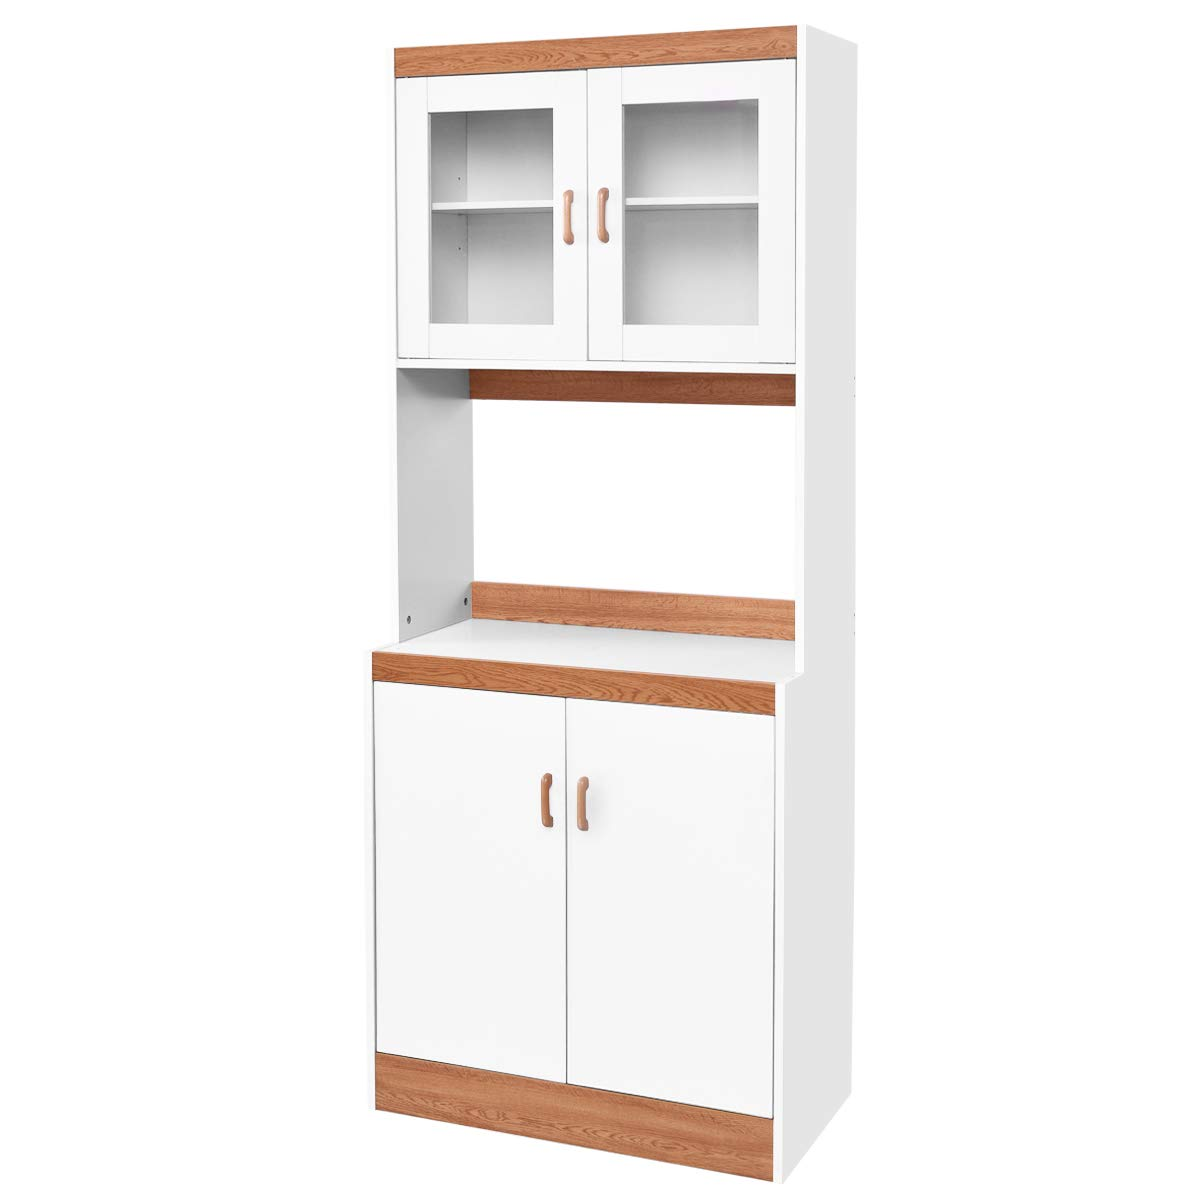 Giantex Microwave Cabinet Counter Kitchen Pantry Cupboard Storage Cabinet Shelves White (72.1'' Height) by Giantex